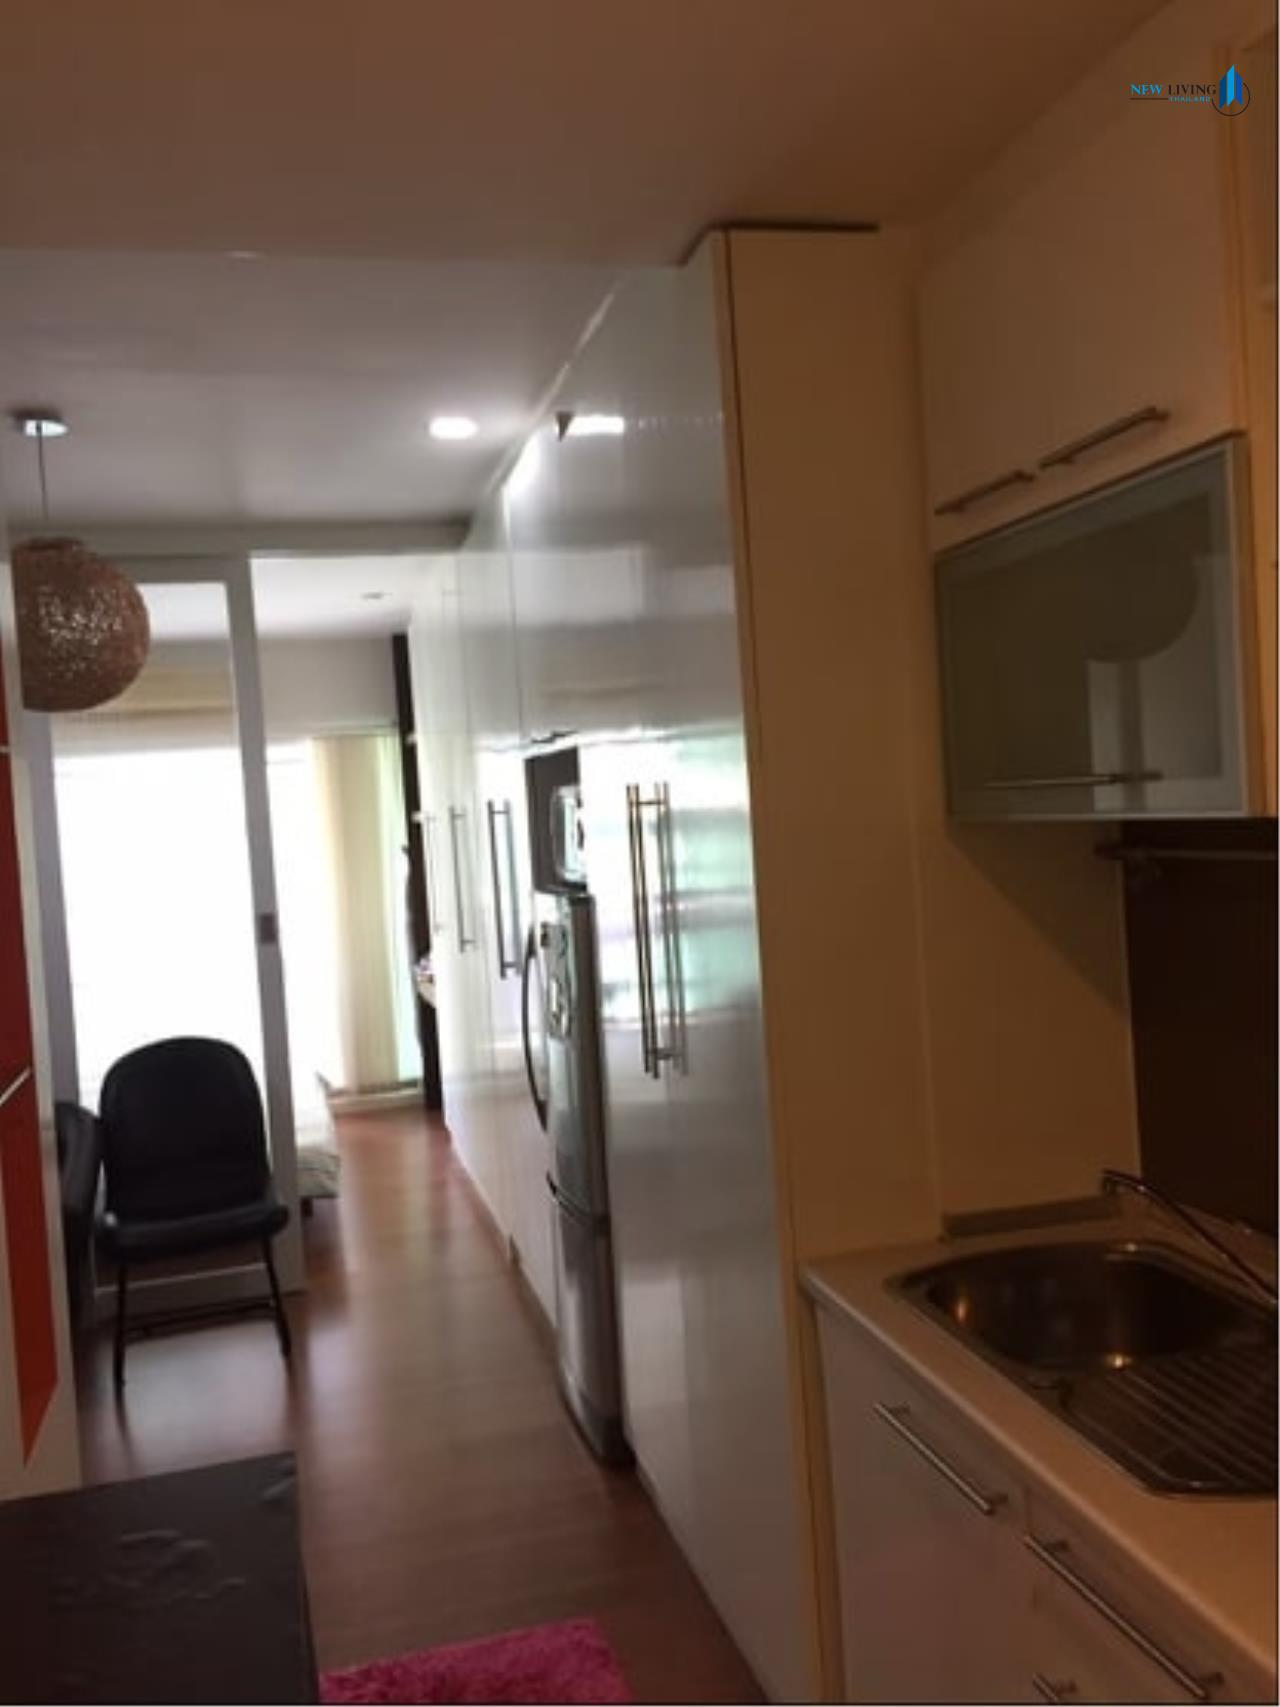 New Living Thailand Agency's **** Rental price !!! Grand park view asok 1 bedroom 31 sq.m. 7